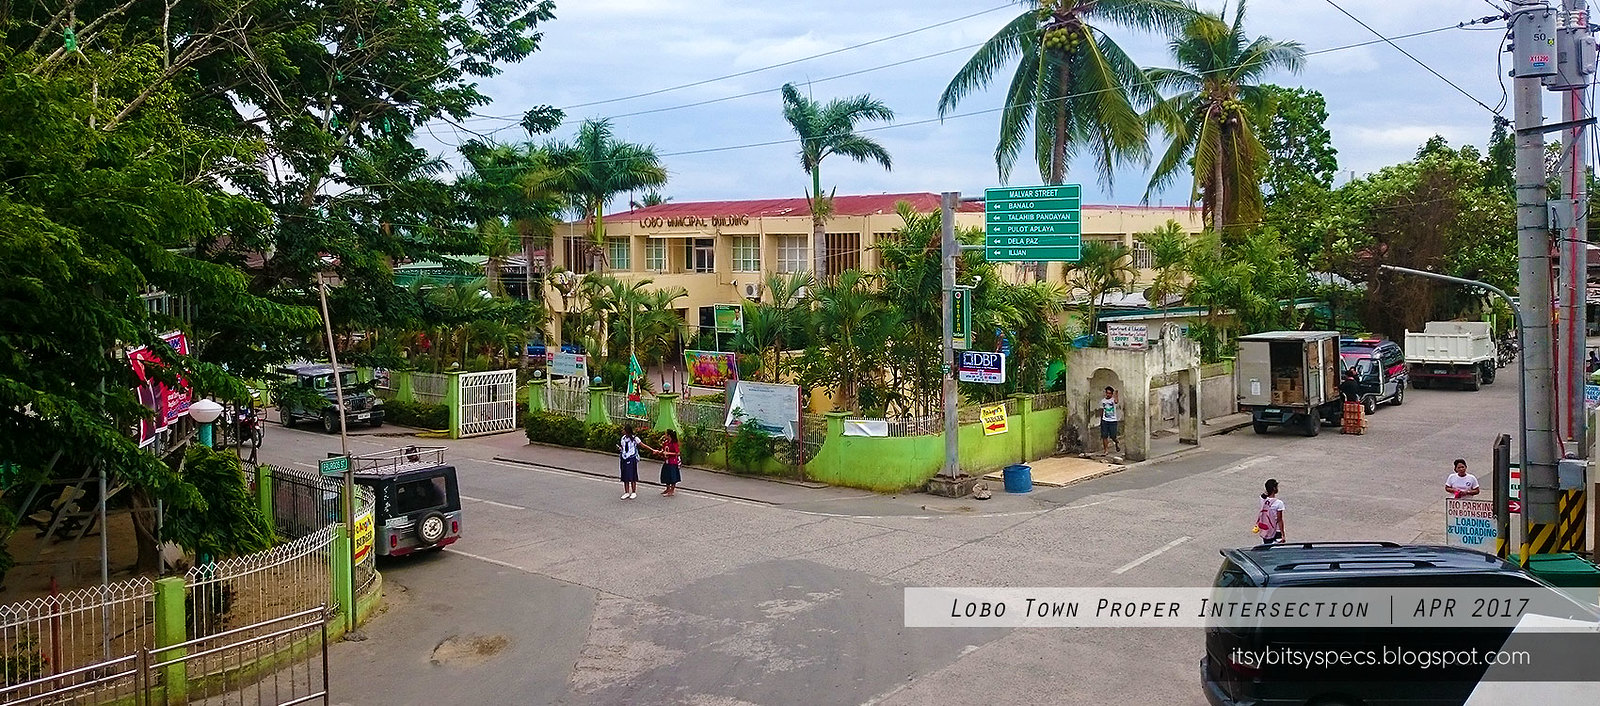 Lobo Town Proper Intersection